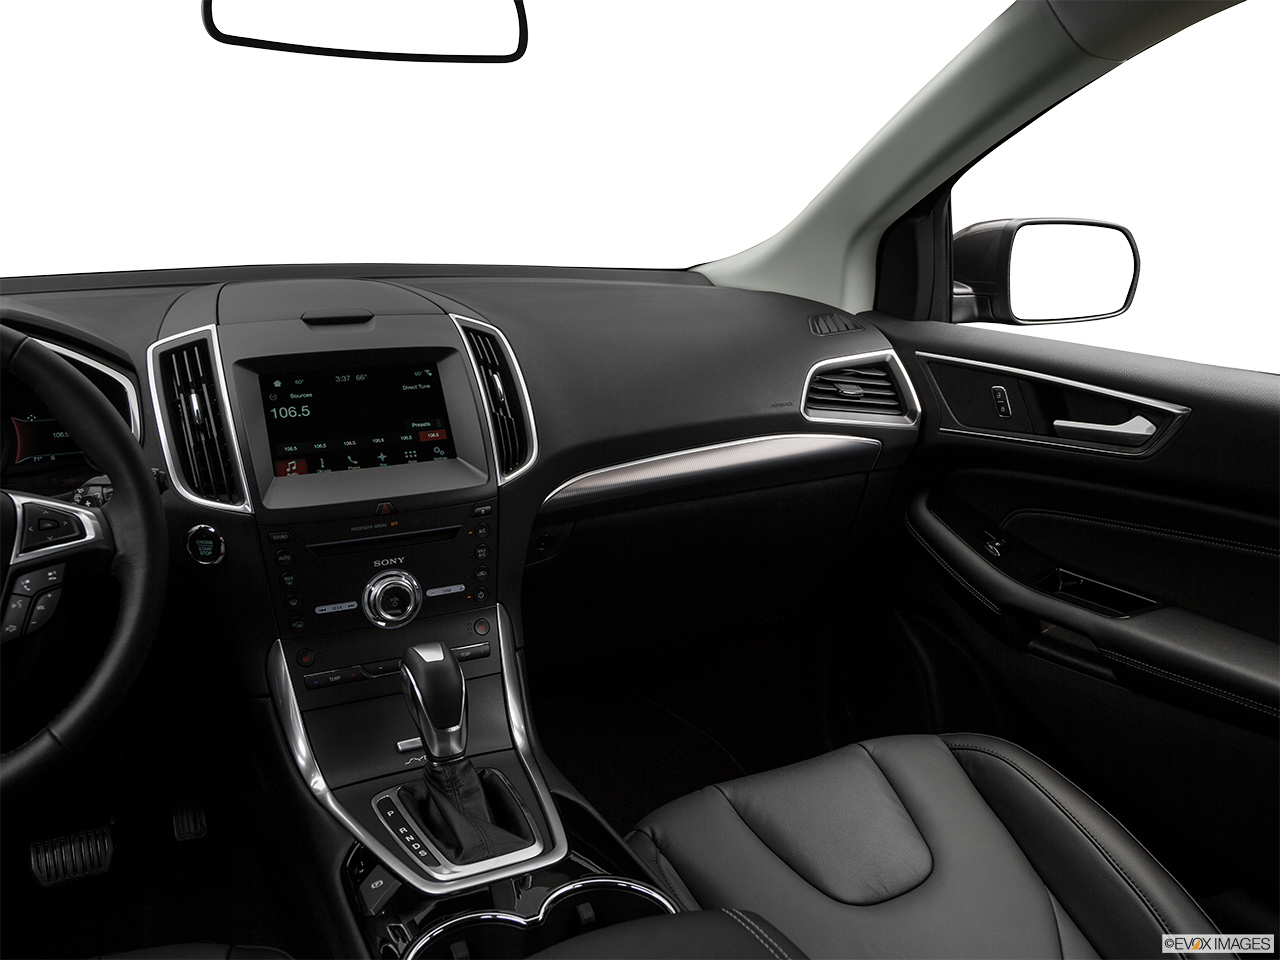 ford edge 2017 3 5l v6 titanium awd full option in uae. Black Bedroom Furniture Sets. Home Design Ideas